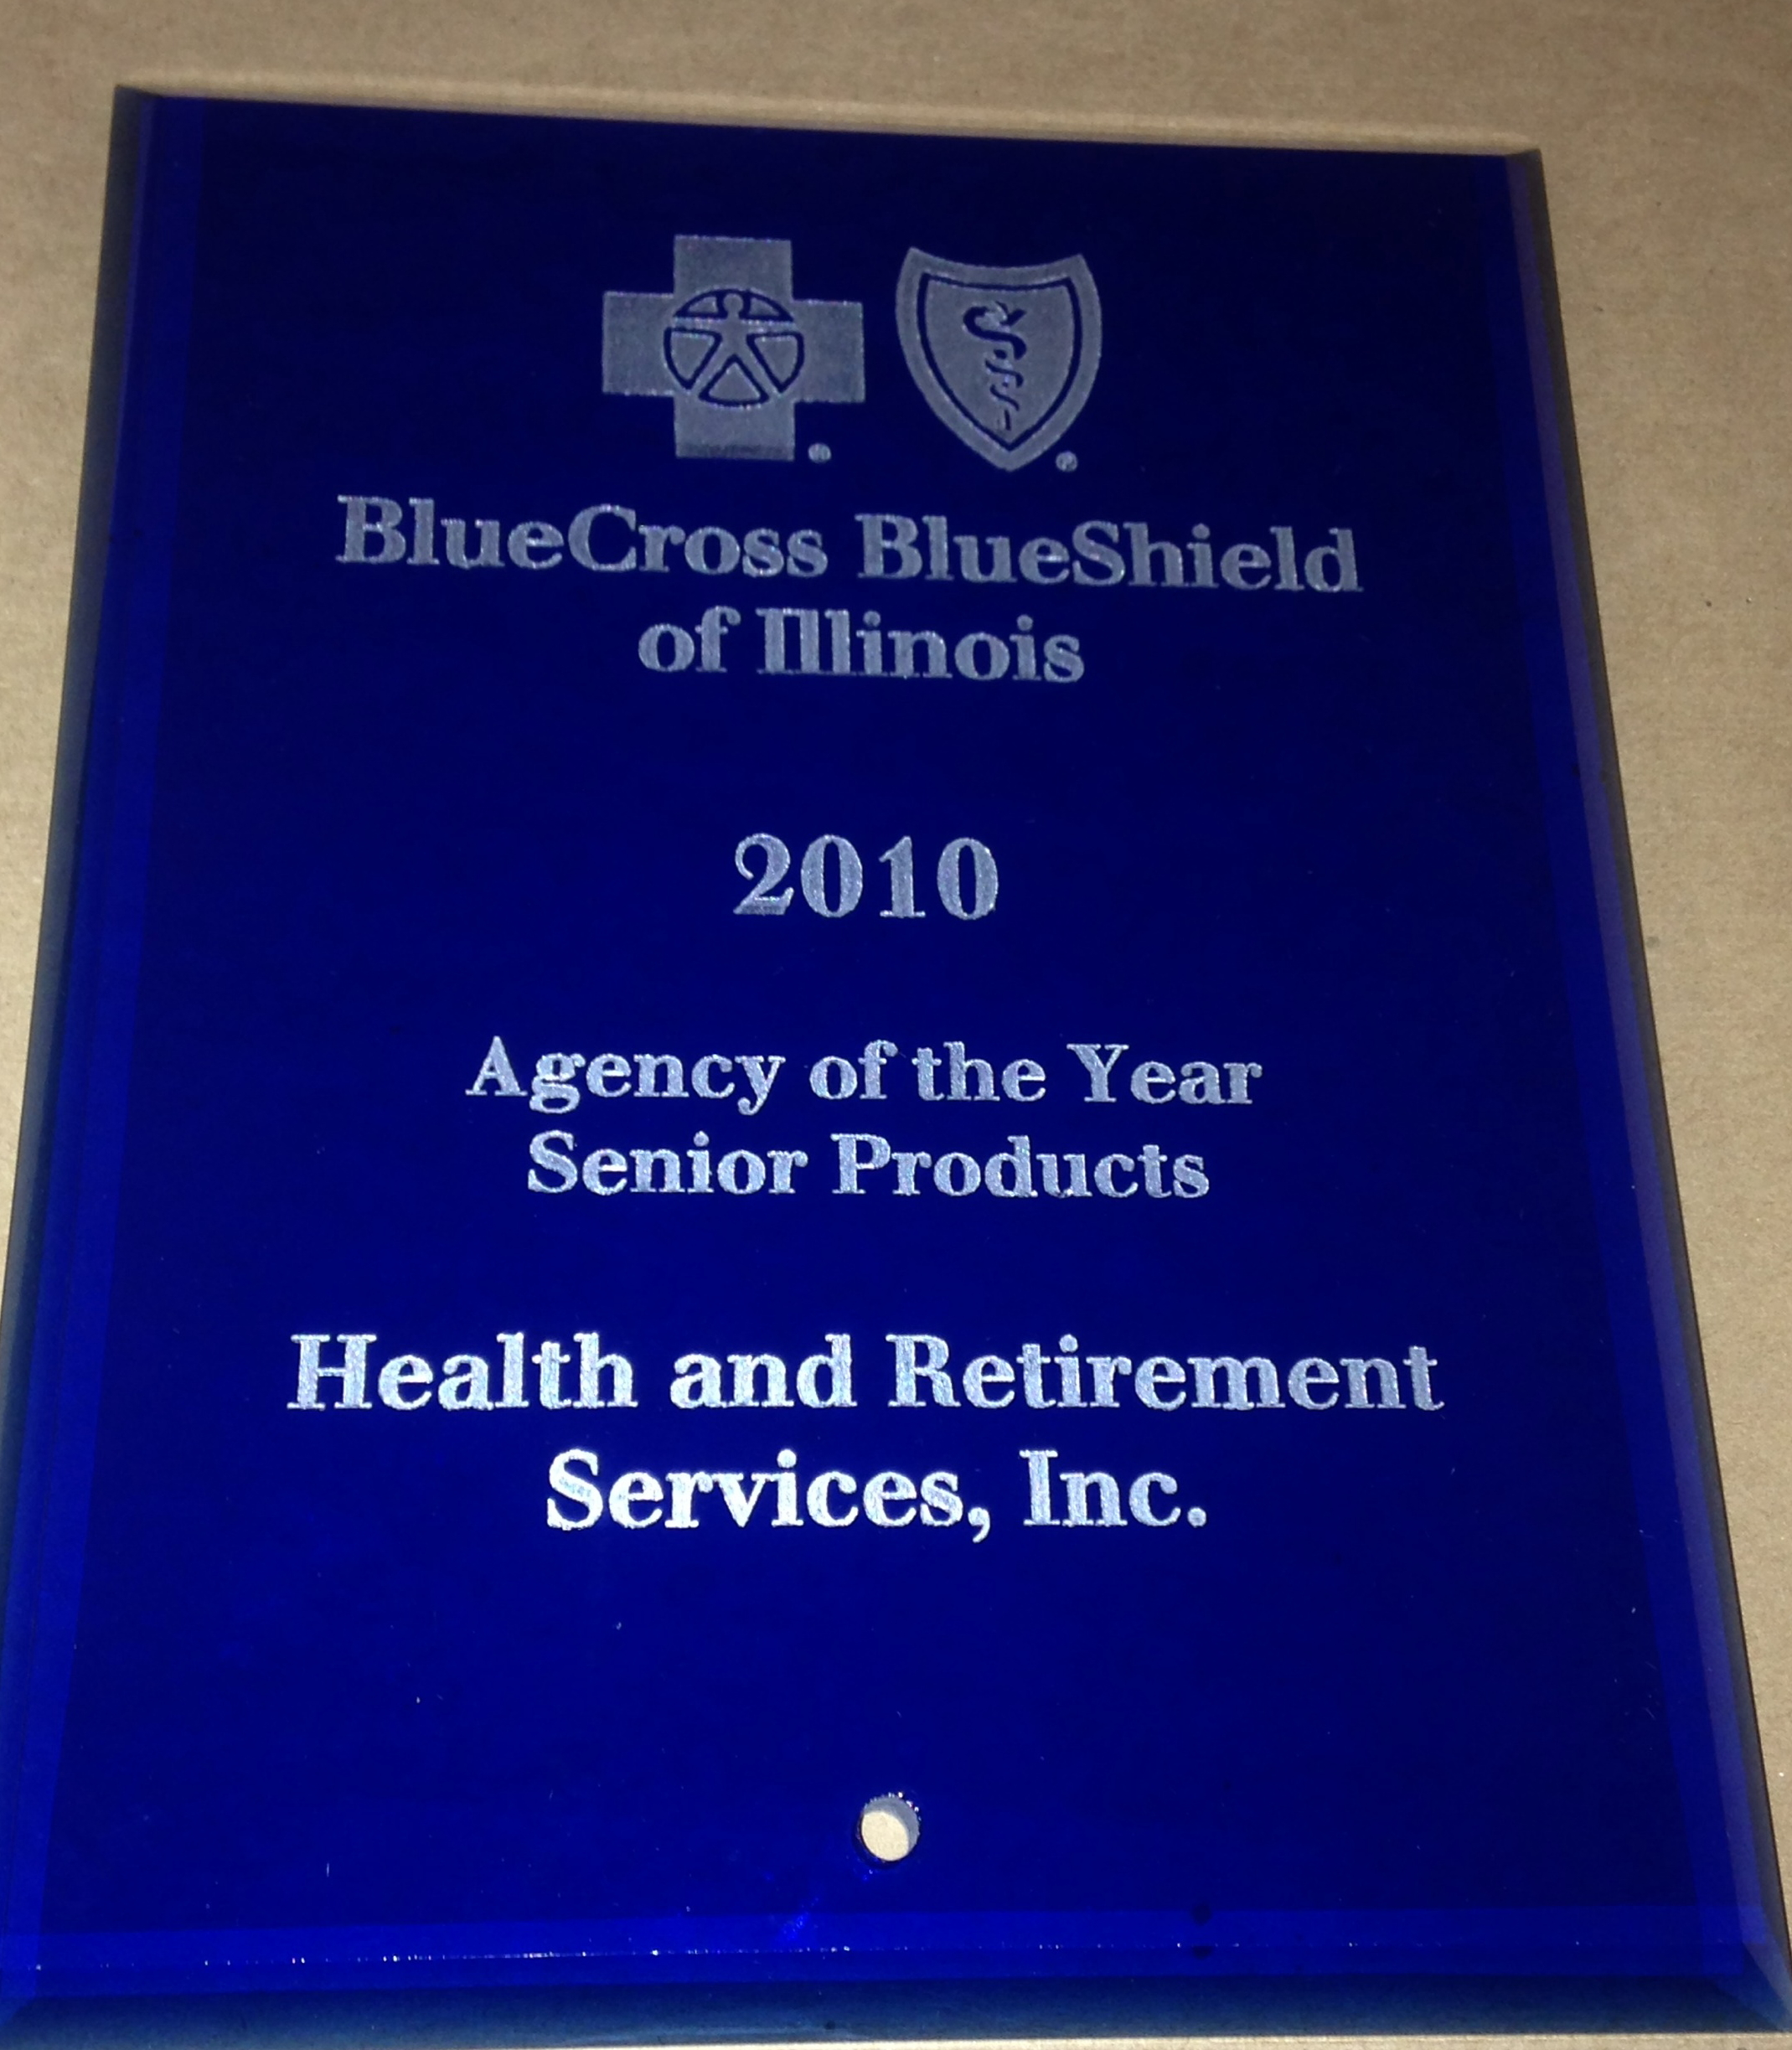 BlueCross BlueShield of Illinois 2010 agency fo the year senior products